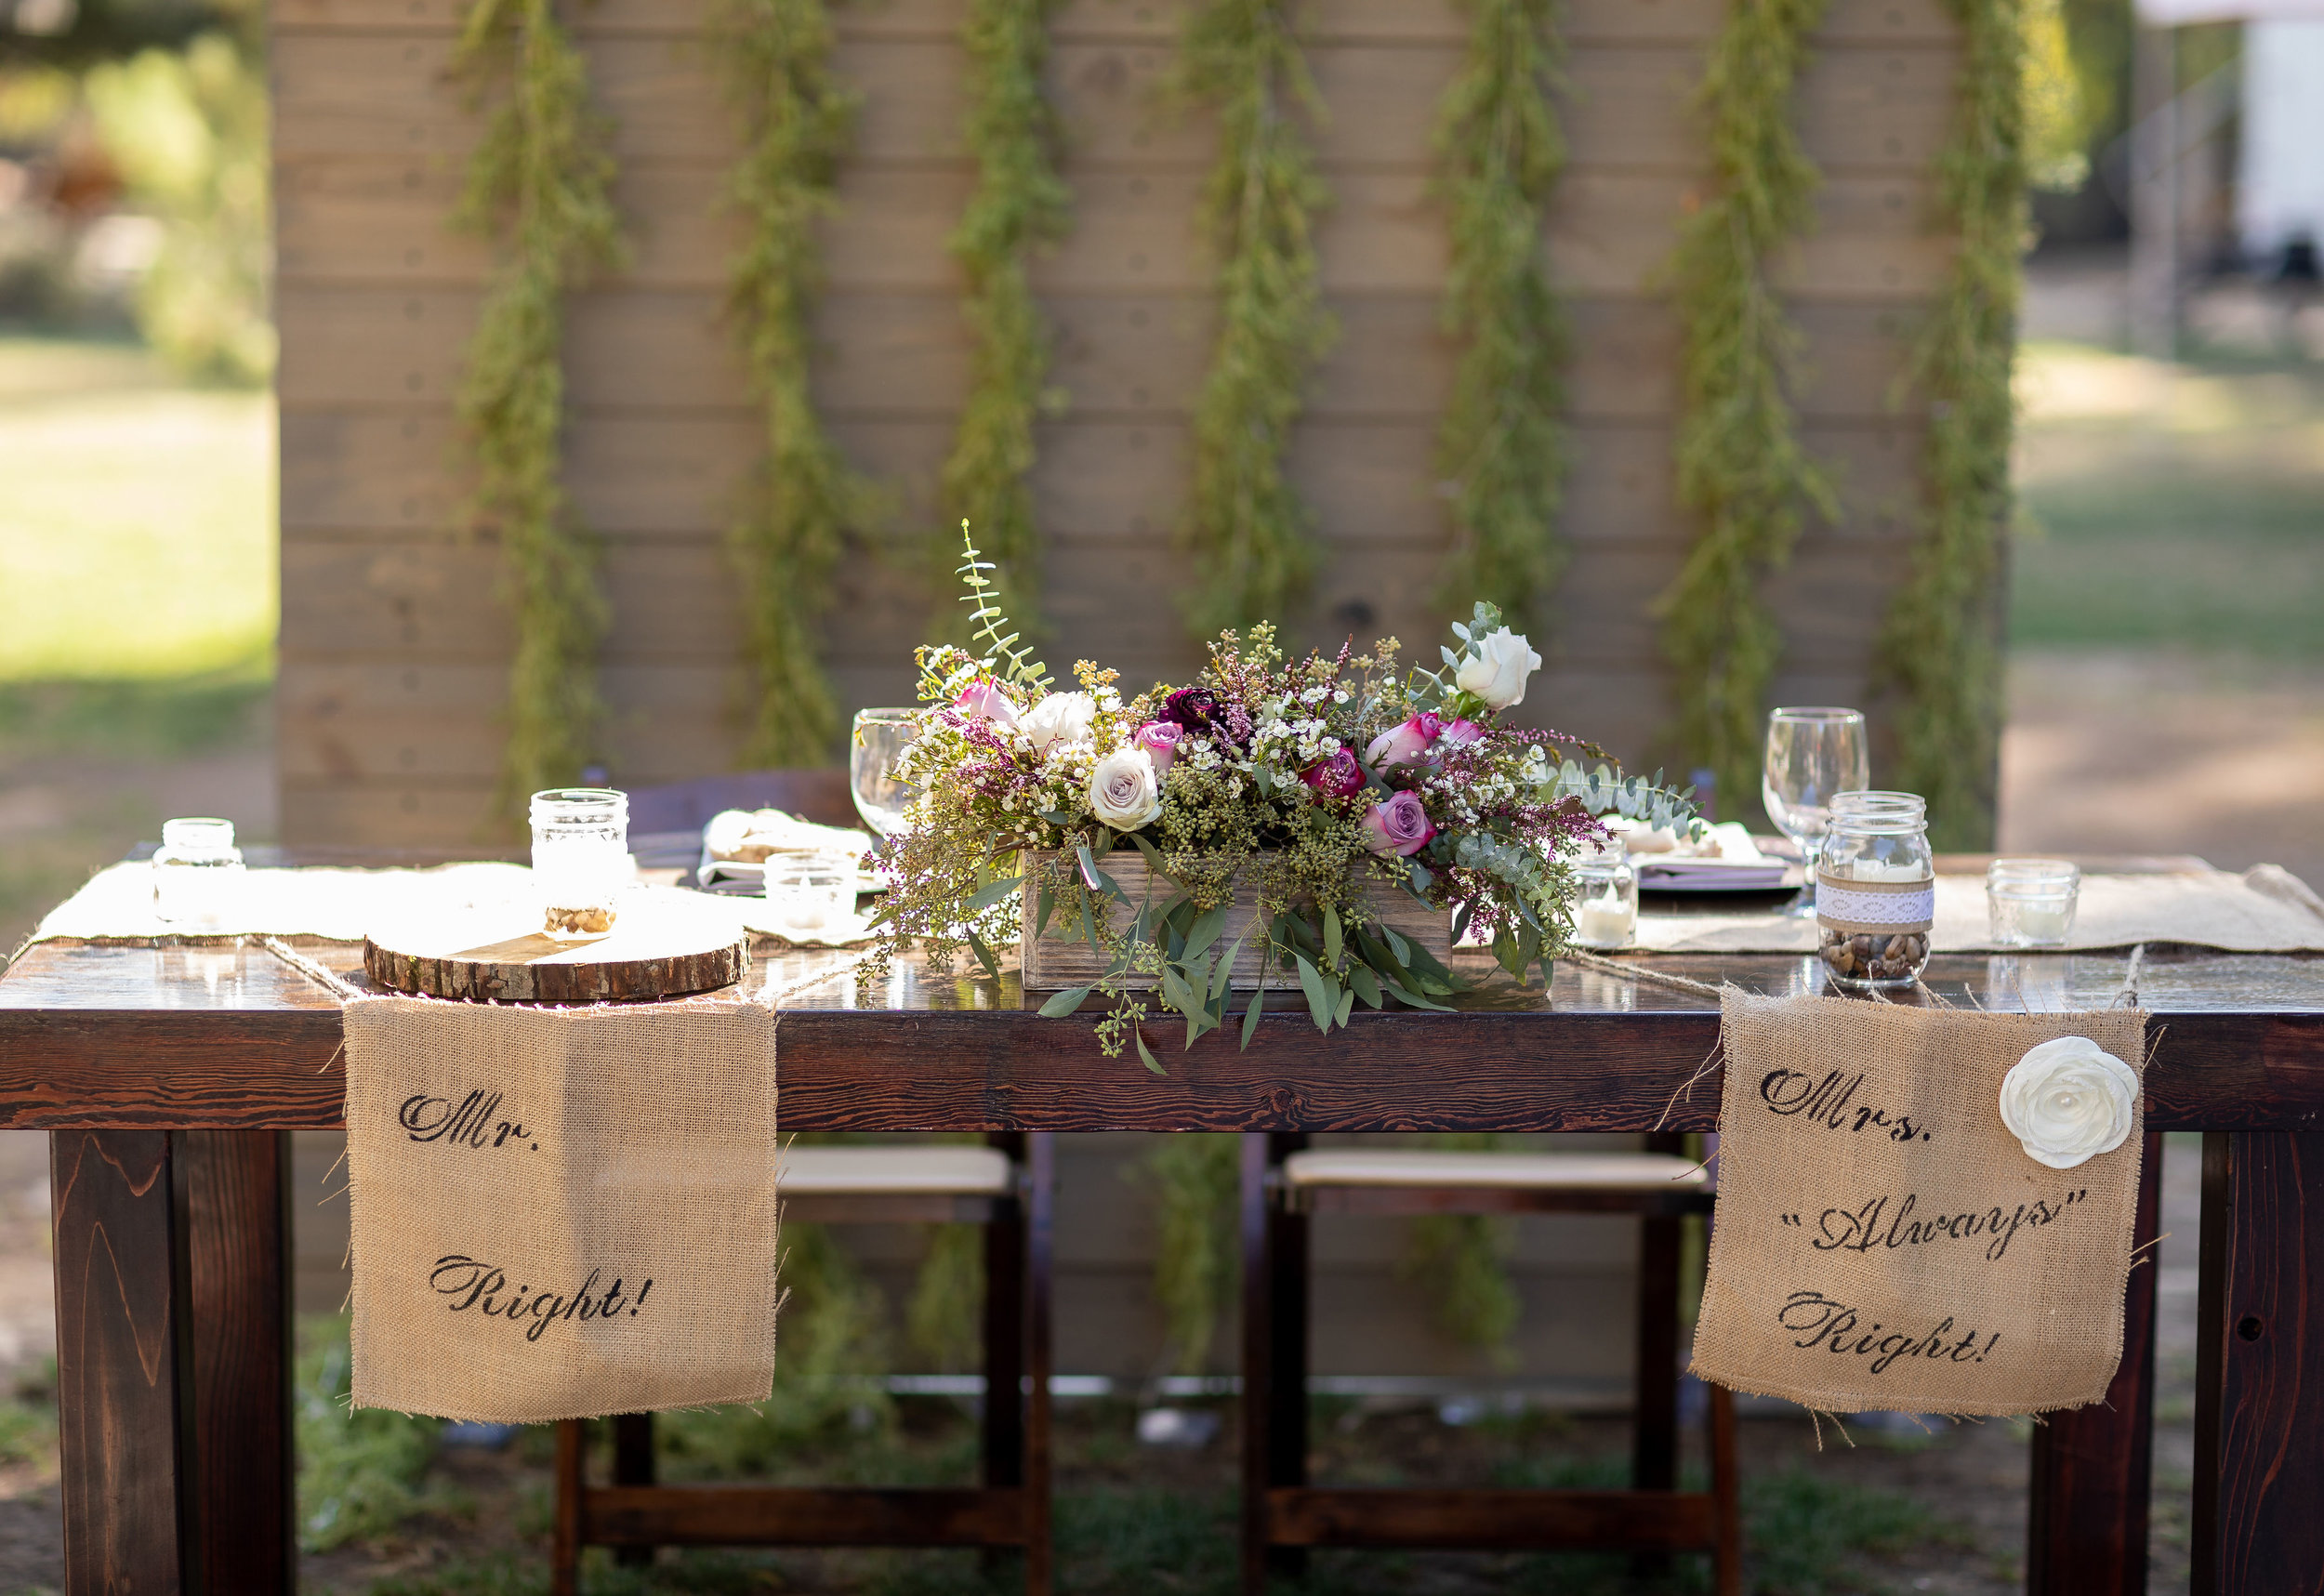 Cute Photo of Sweetheart Table Idea.jpg